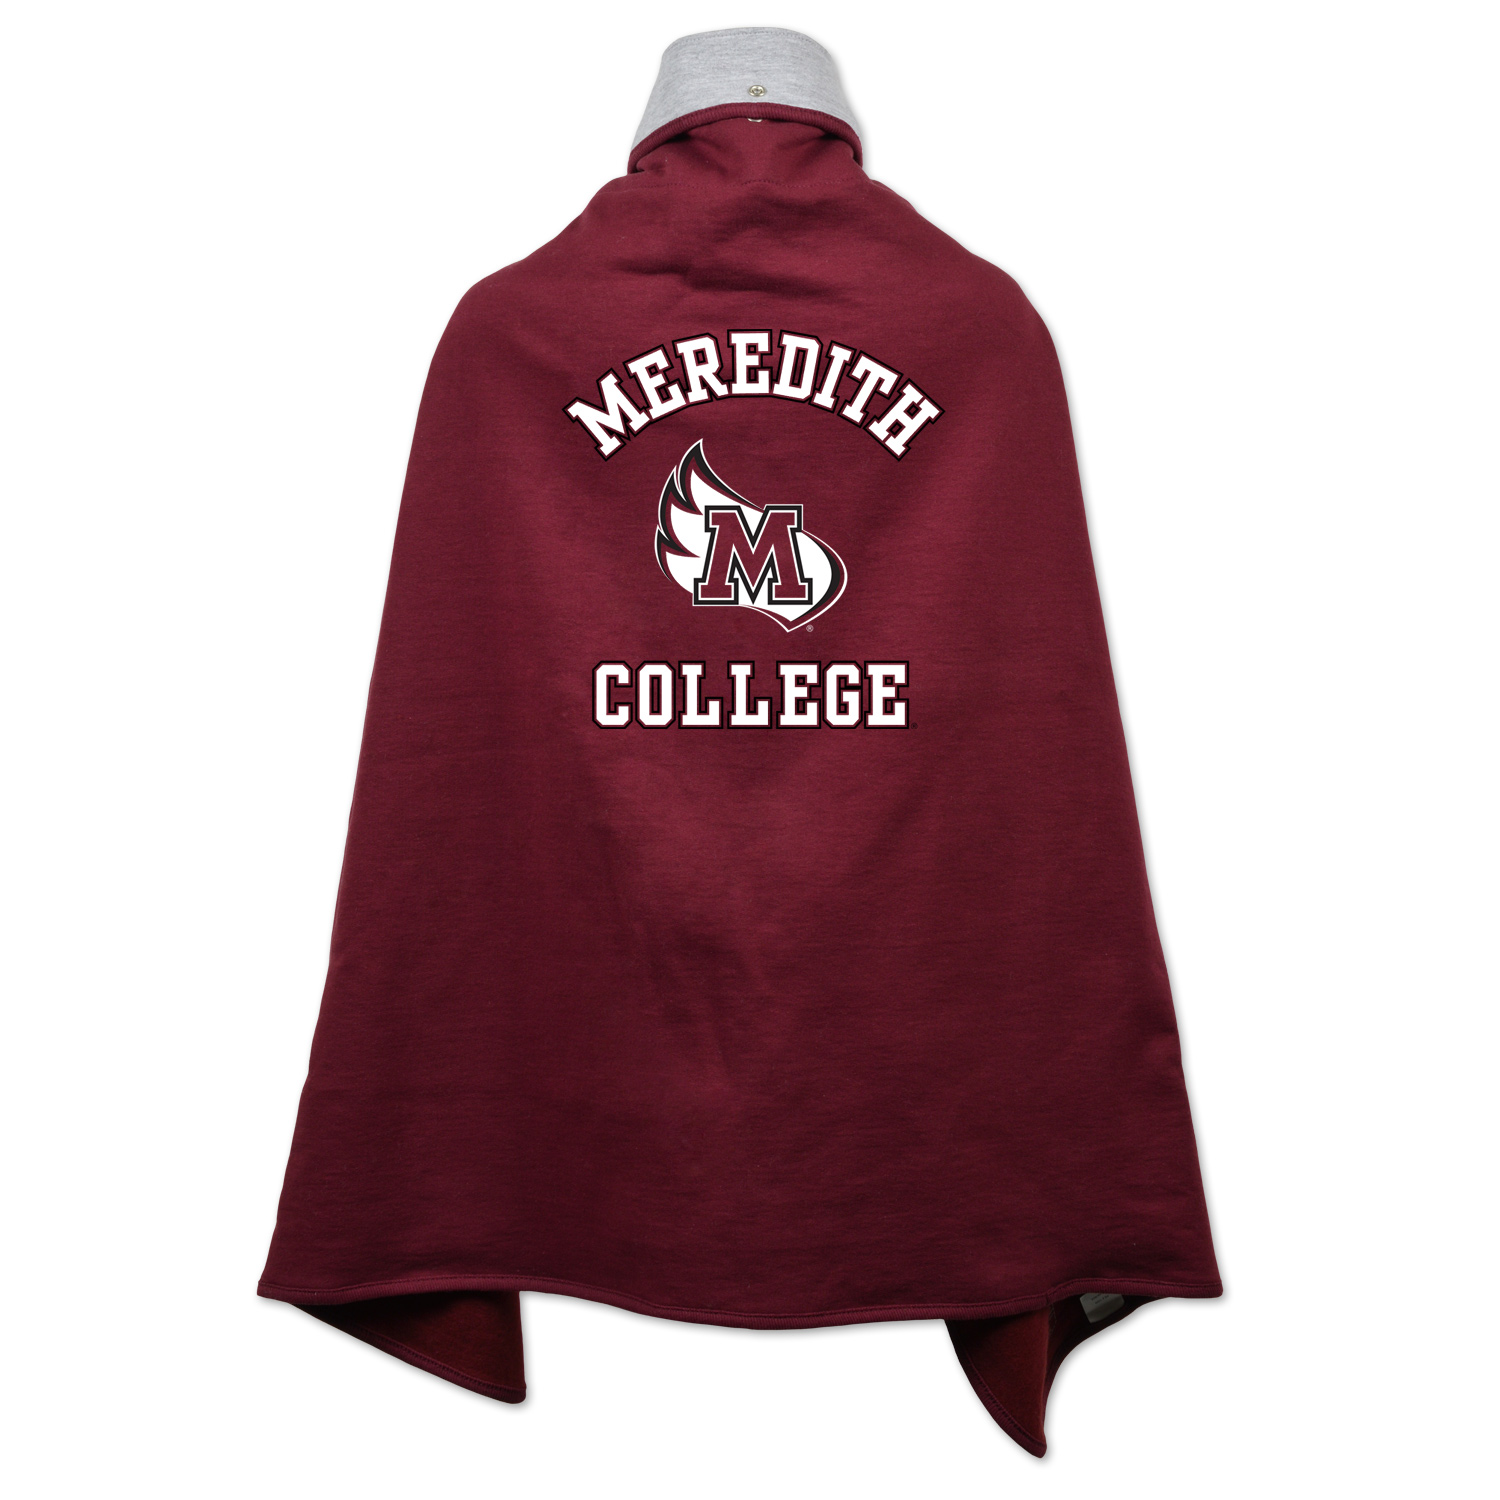 Image for the Cape Drape Maroon Meredith College MWing College Kids product